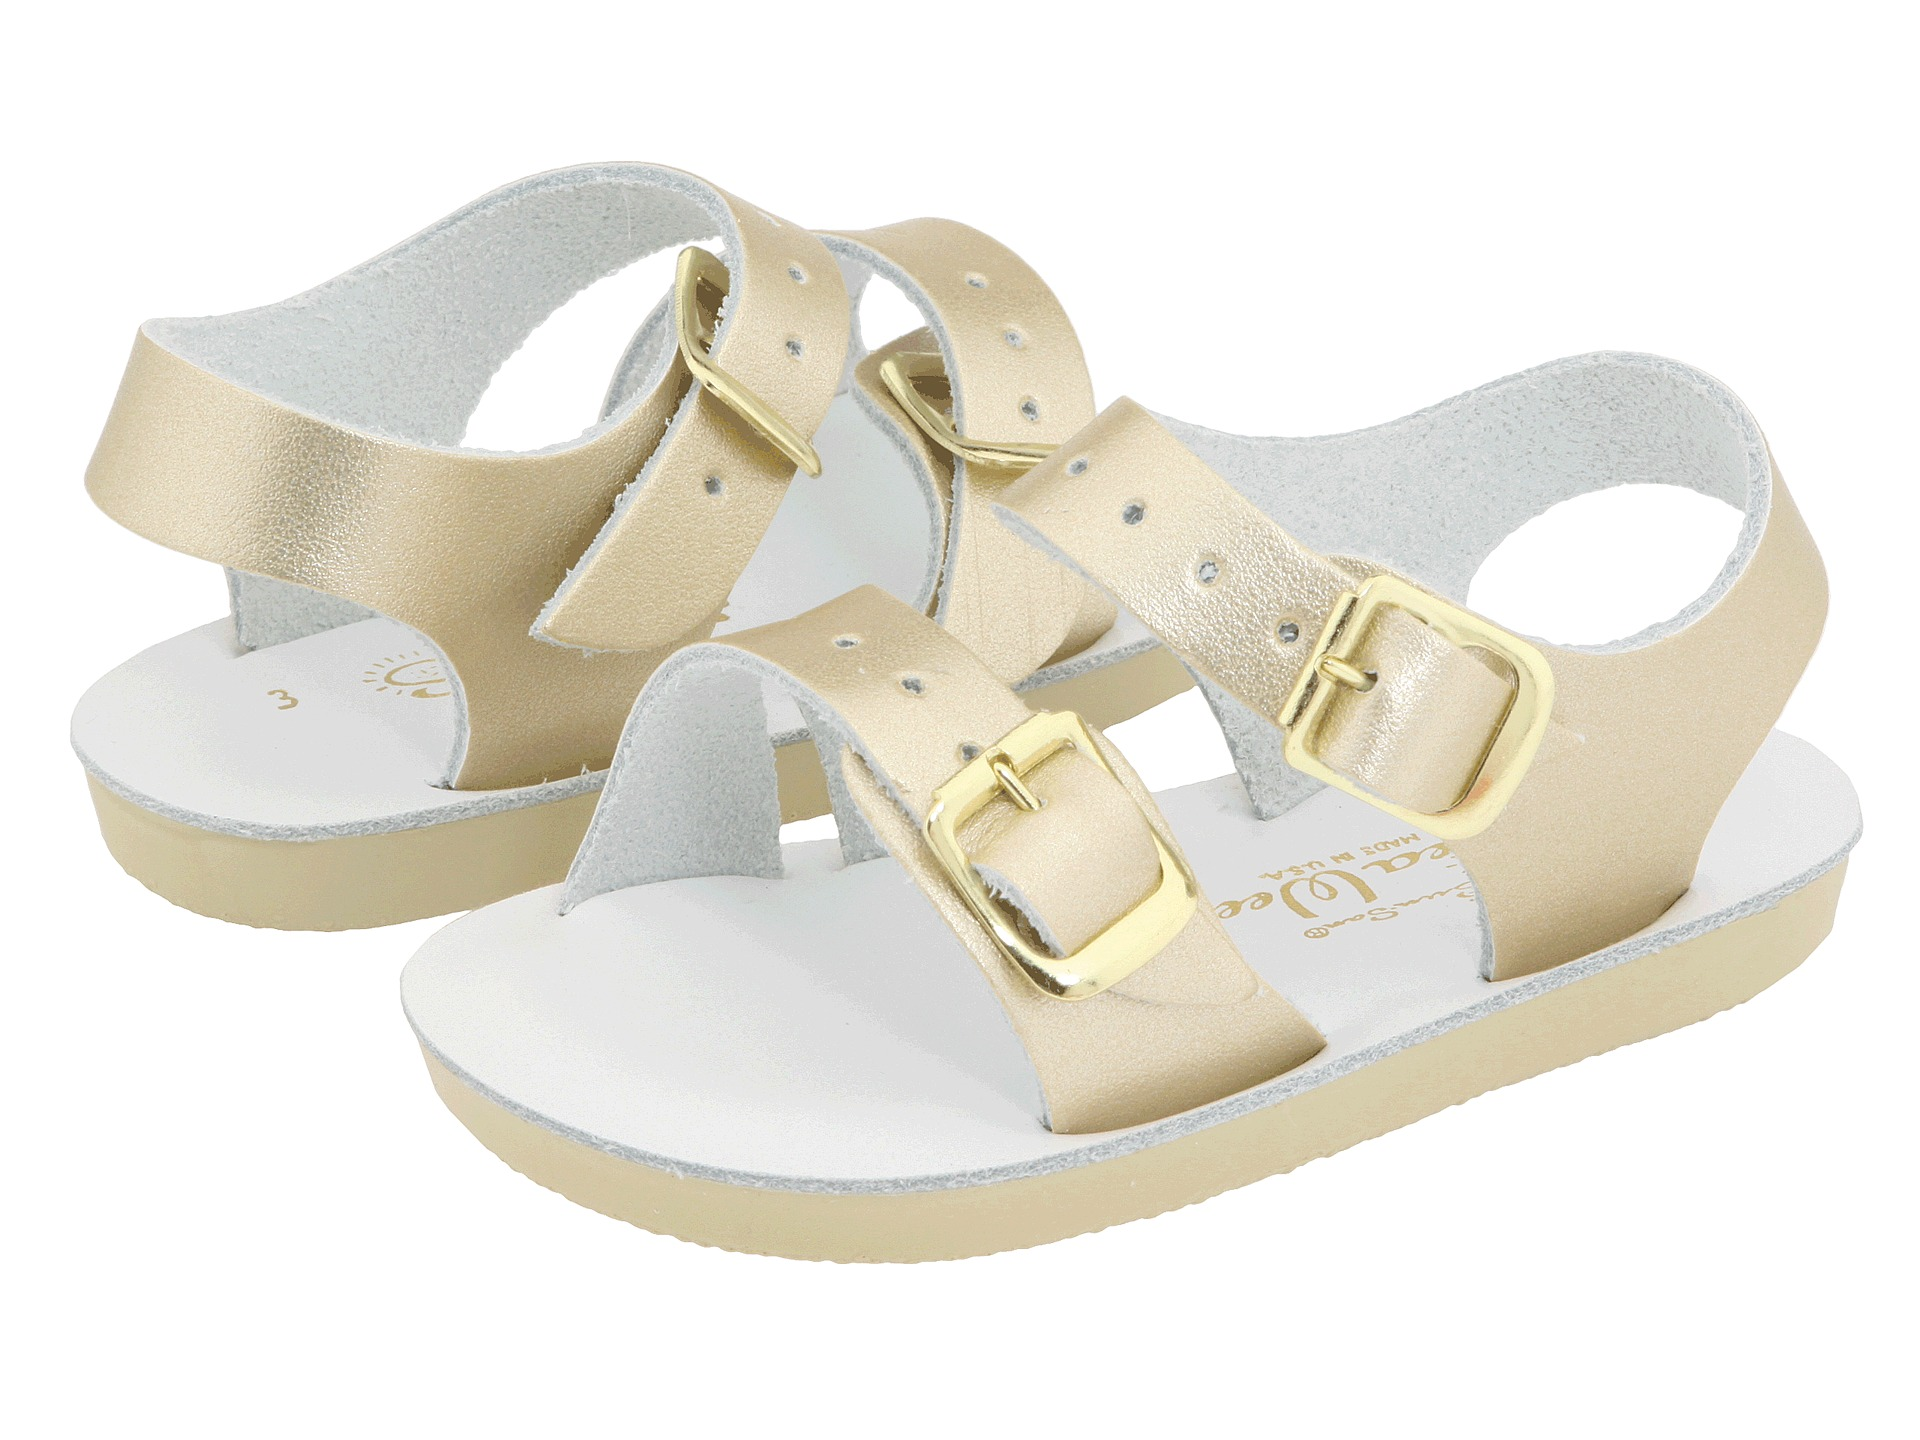 salt water sandal by hoy shoes sun san sea wees infant toddler gold free. Black Bedroom Furniture Sets. Home Design Ideas